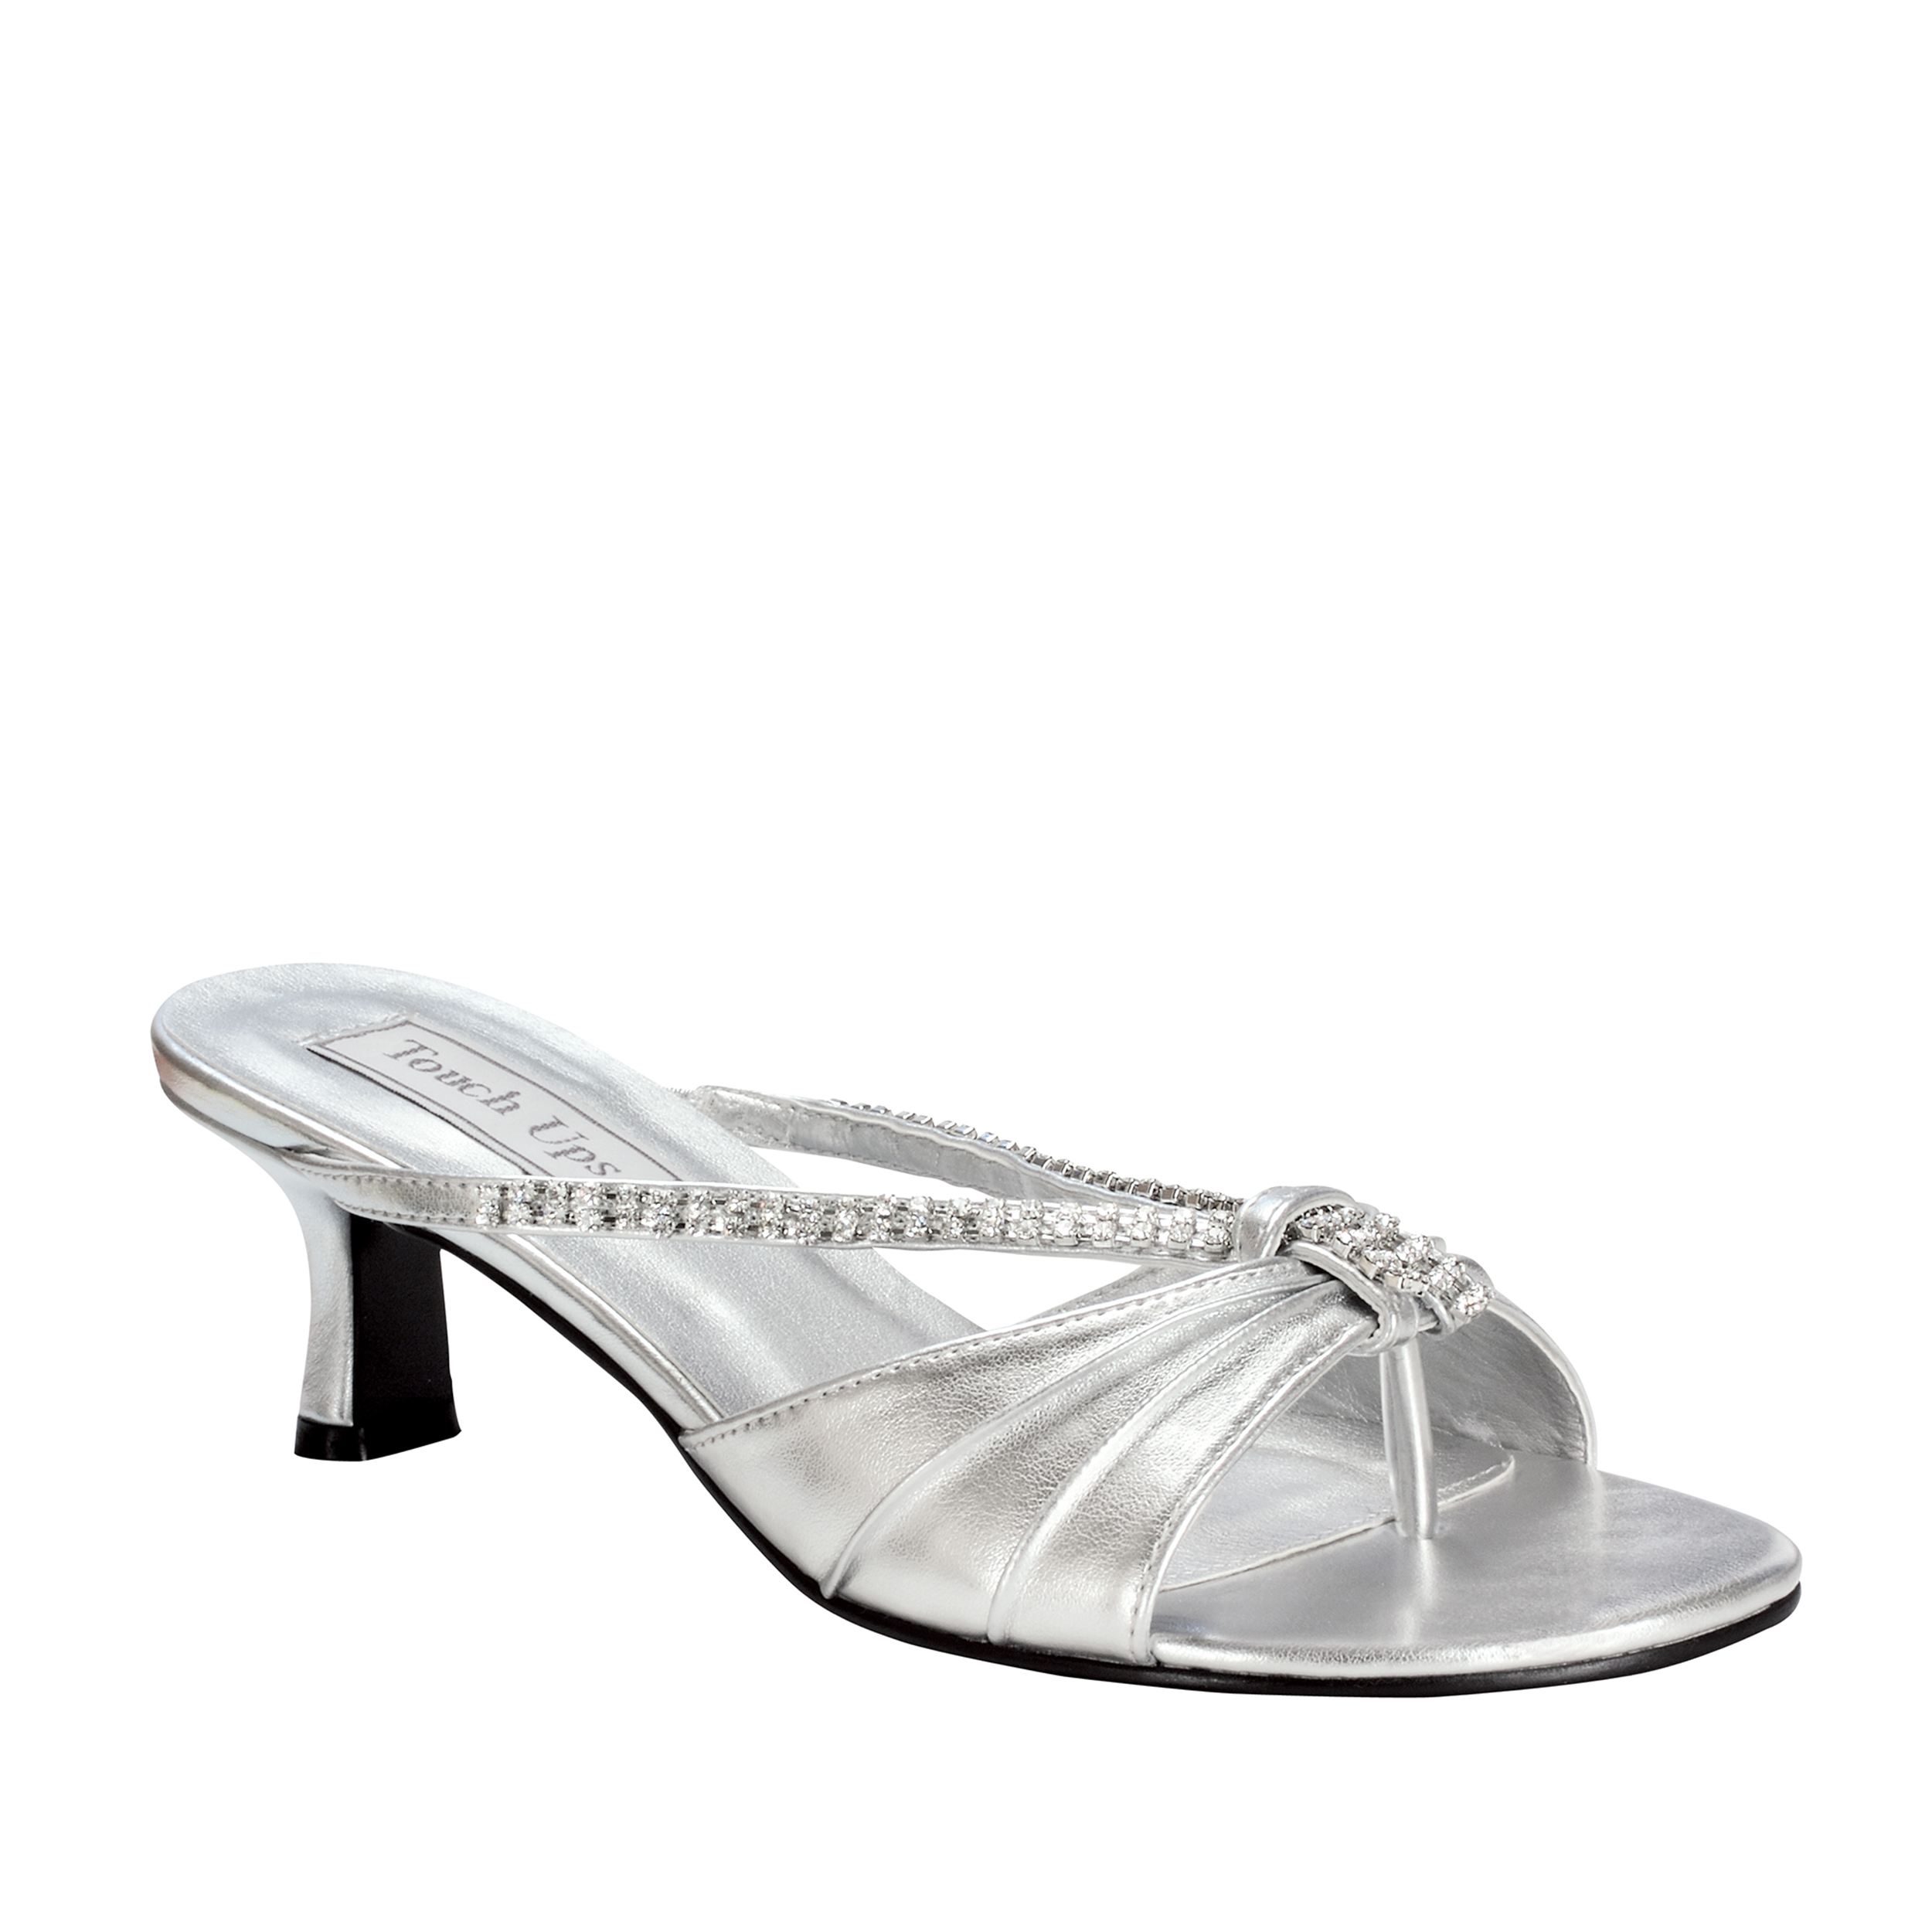 Touch Ups Womens Phoebe Slide Sandal,Silver,9 W US